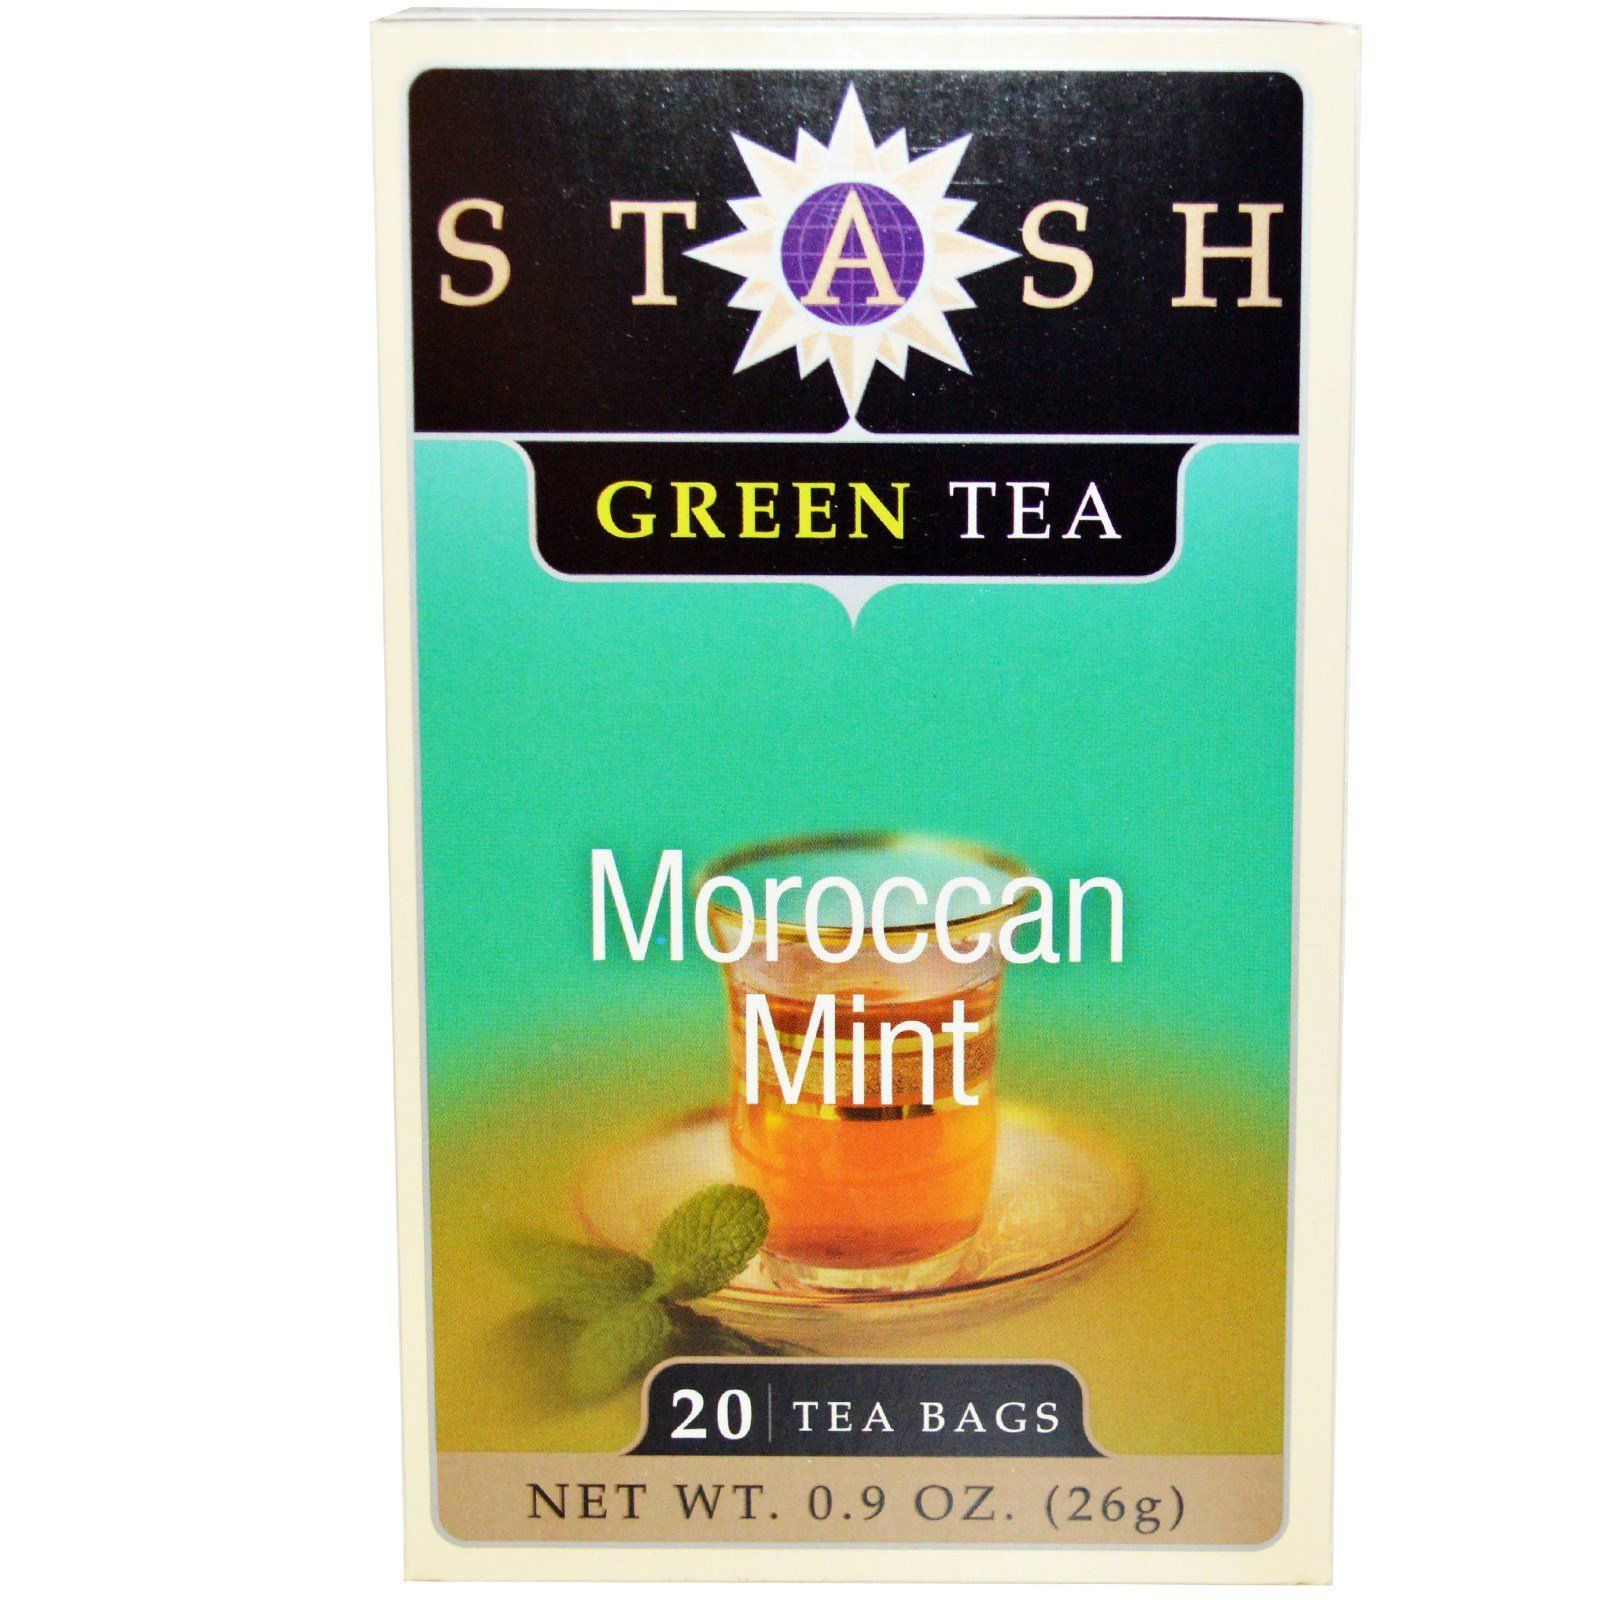 Food & Drink - Stash - Moroccan Mint Green Tea, 20 Bags